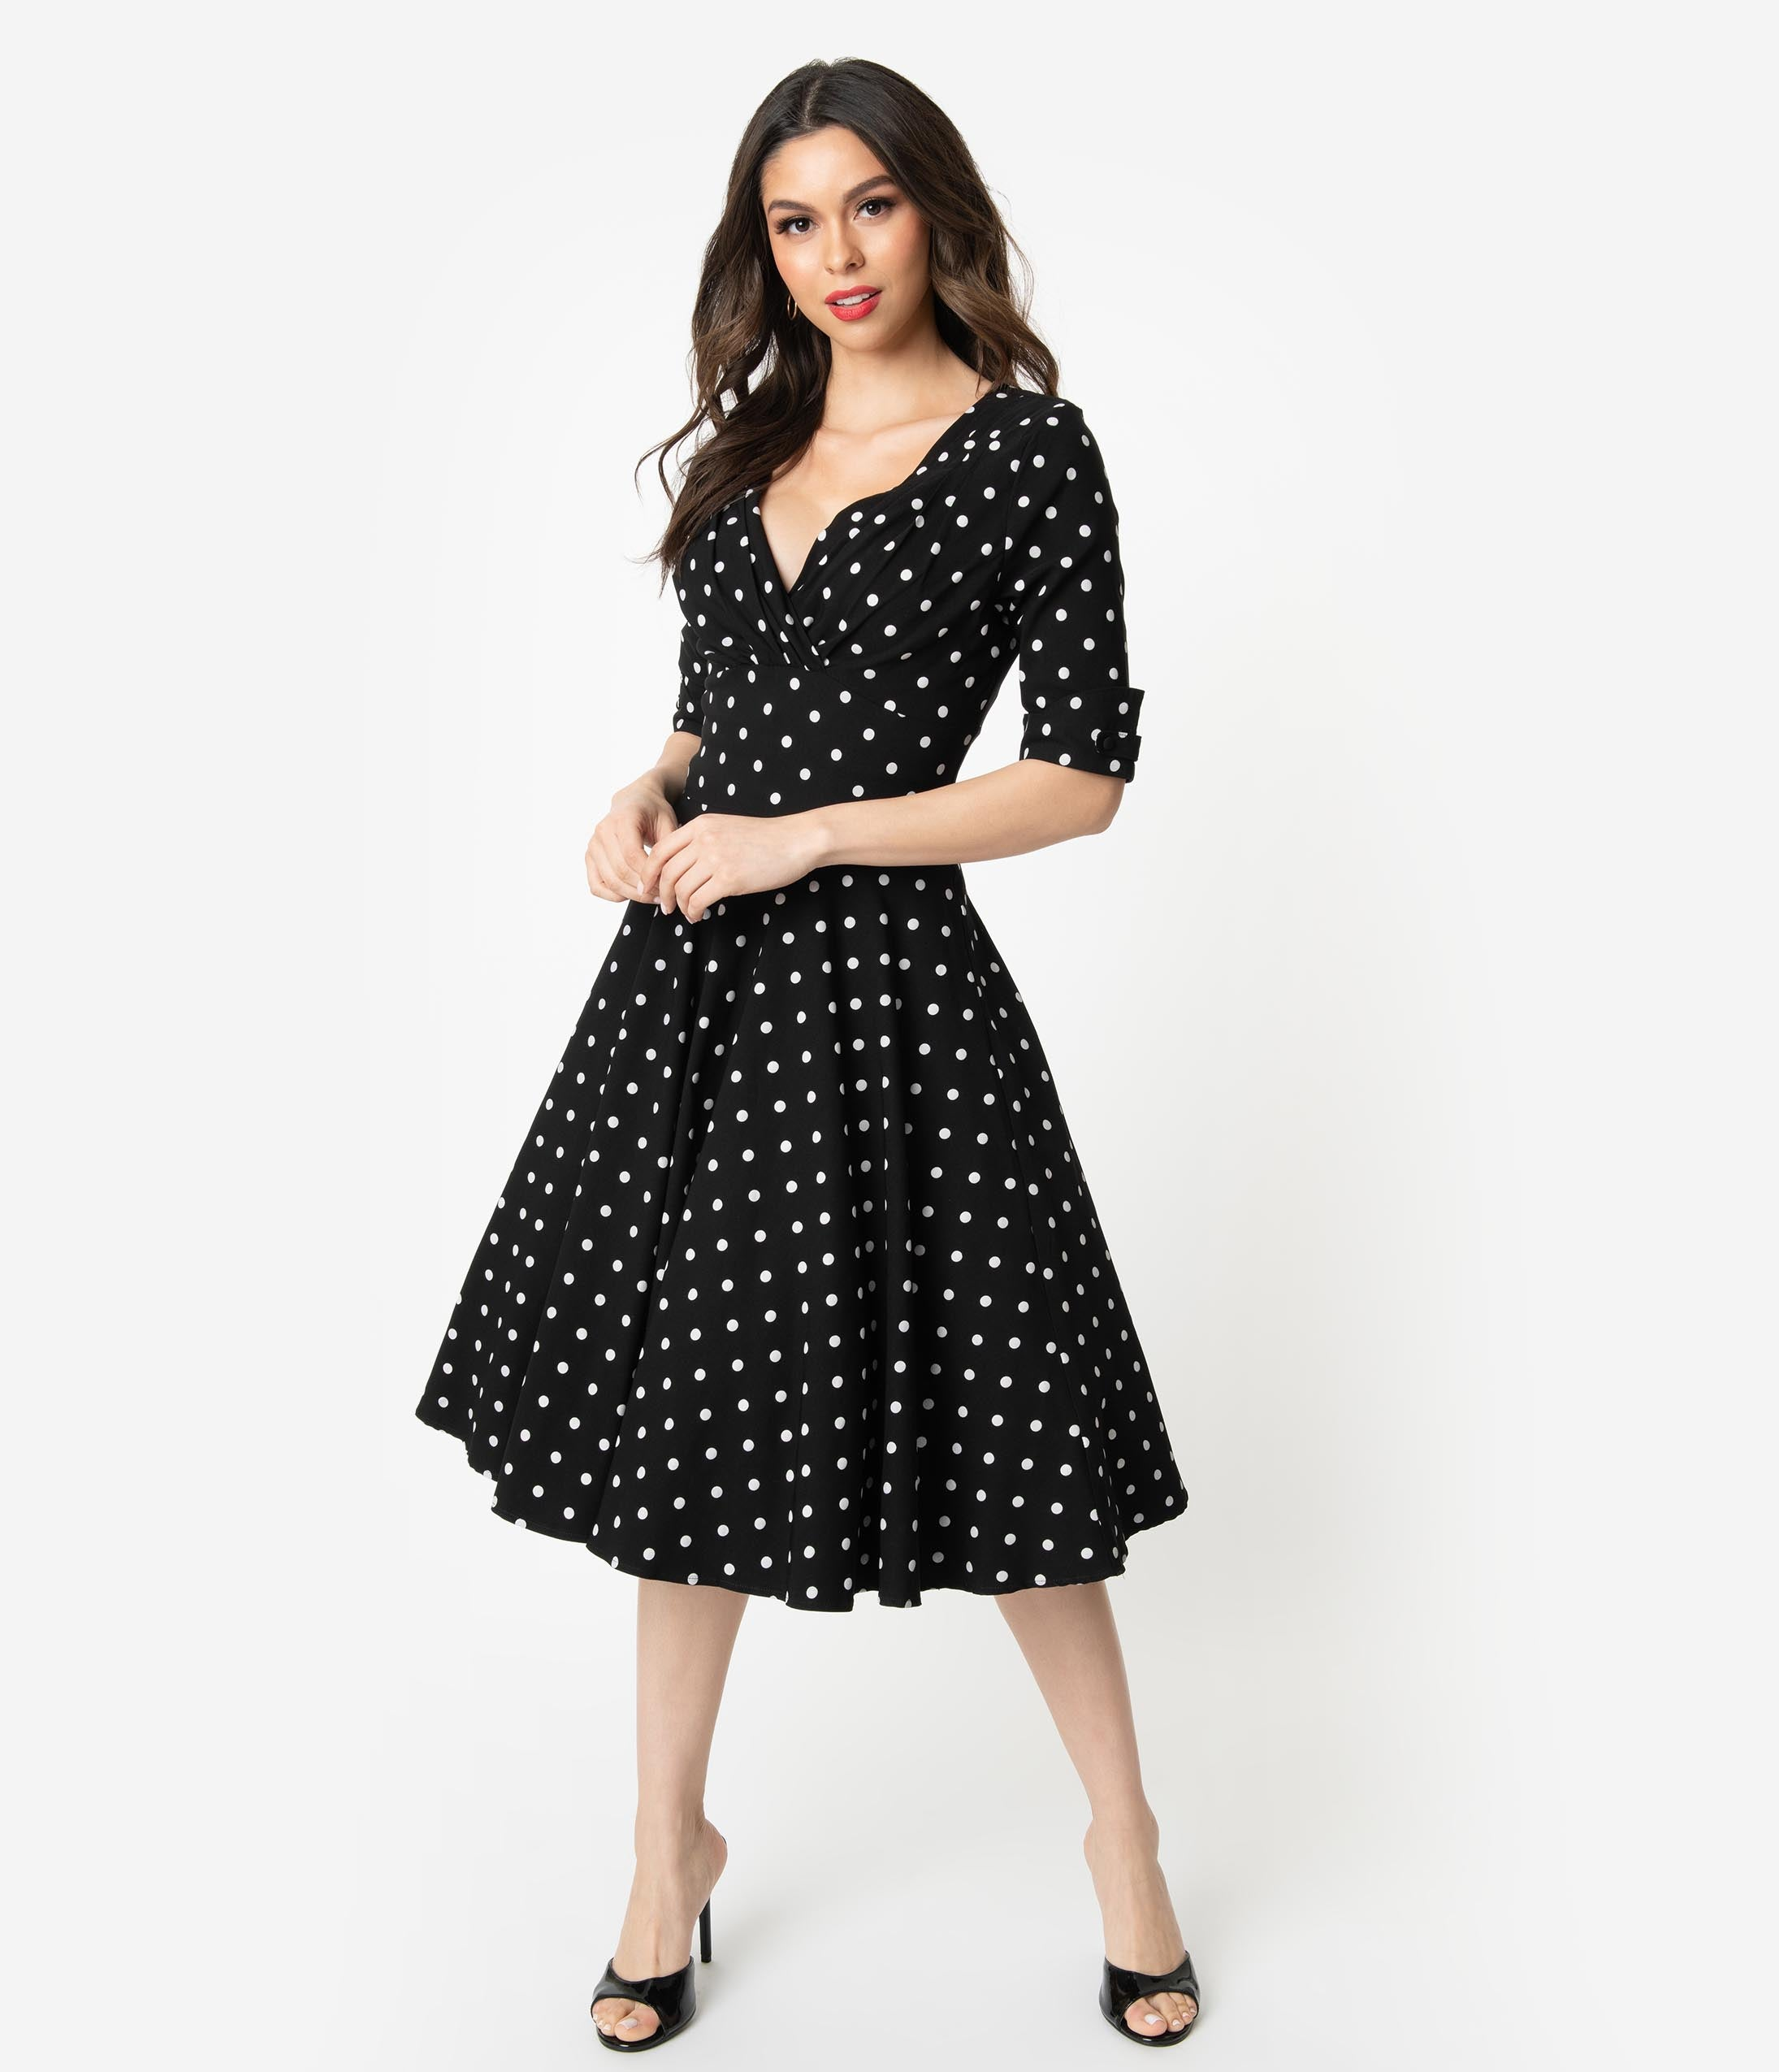 1950s Costumes- Poodle Skirts, Grease, Monroe, Pin Up, I Love Lucy Unique Vintage 1950S Black  White Polka Dot Delores Swing Dress With Sleeves $92.00 AT vintagedancer.com